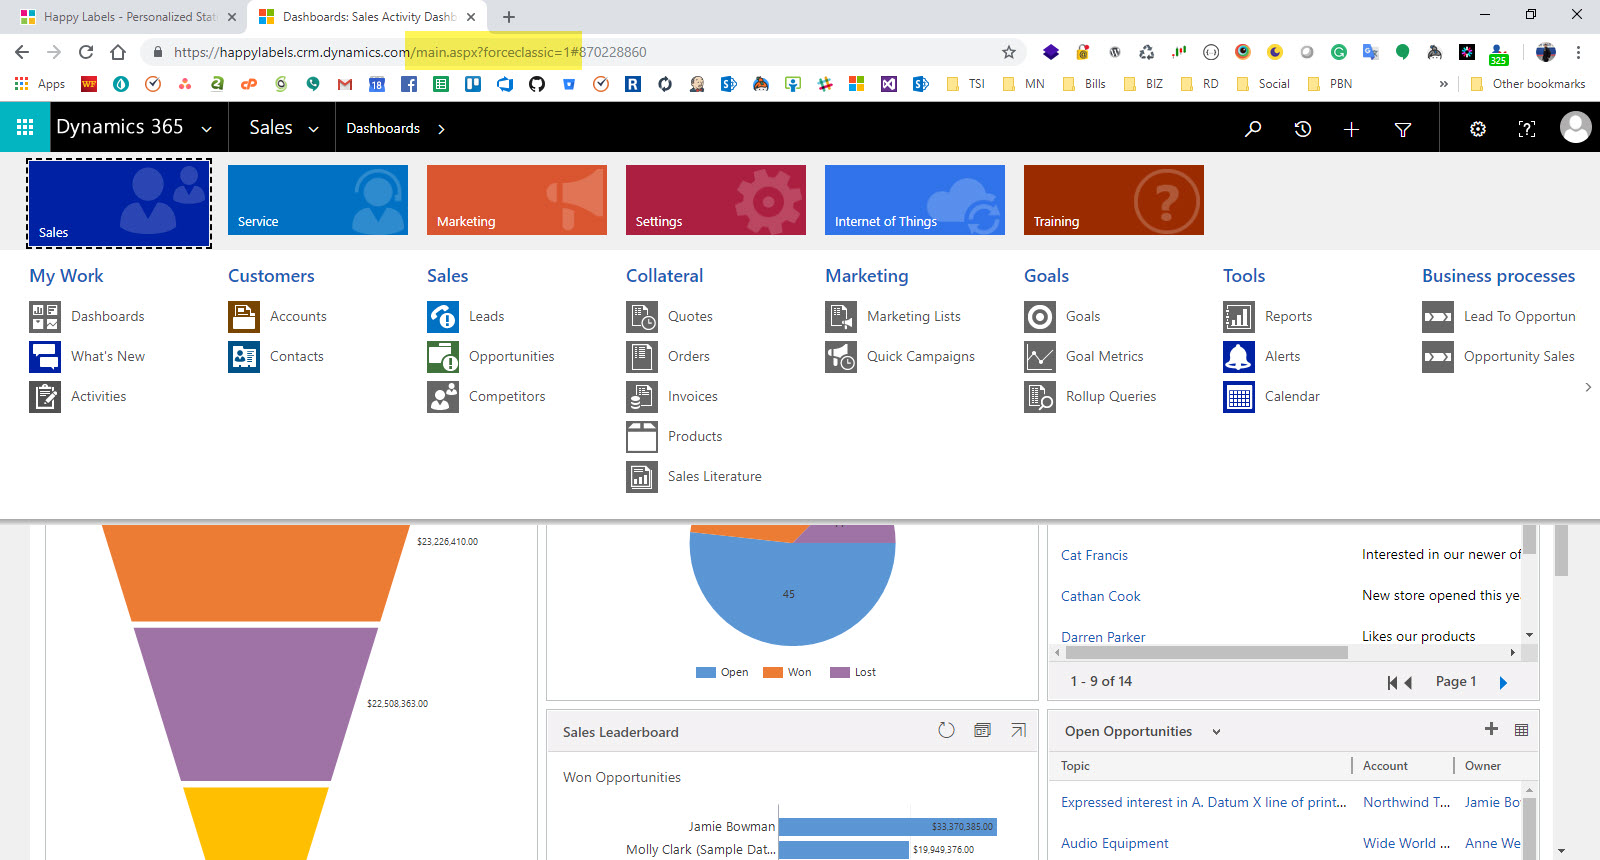 Forcing Classic in Dynamics 365 | Jamie Bowman